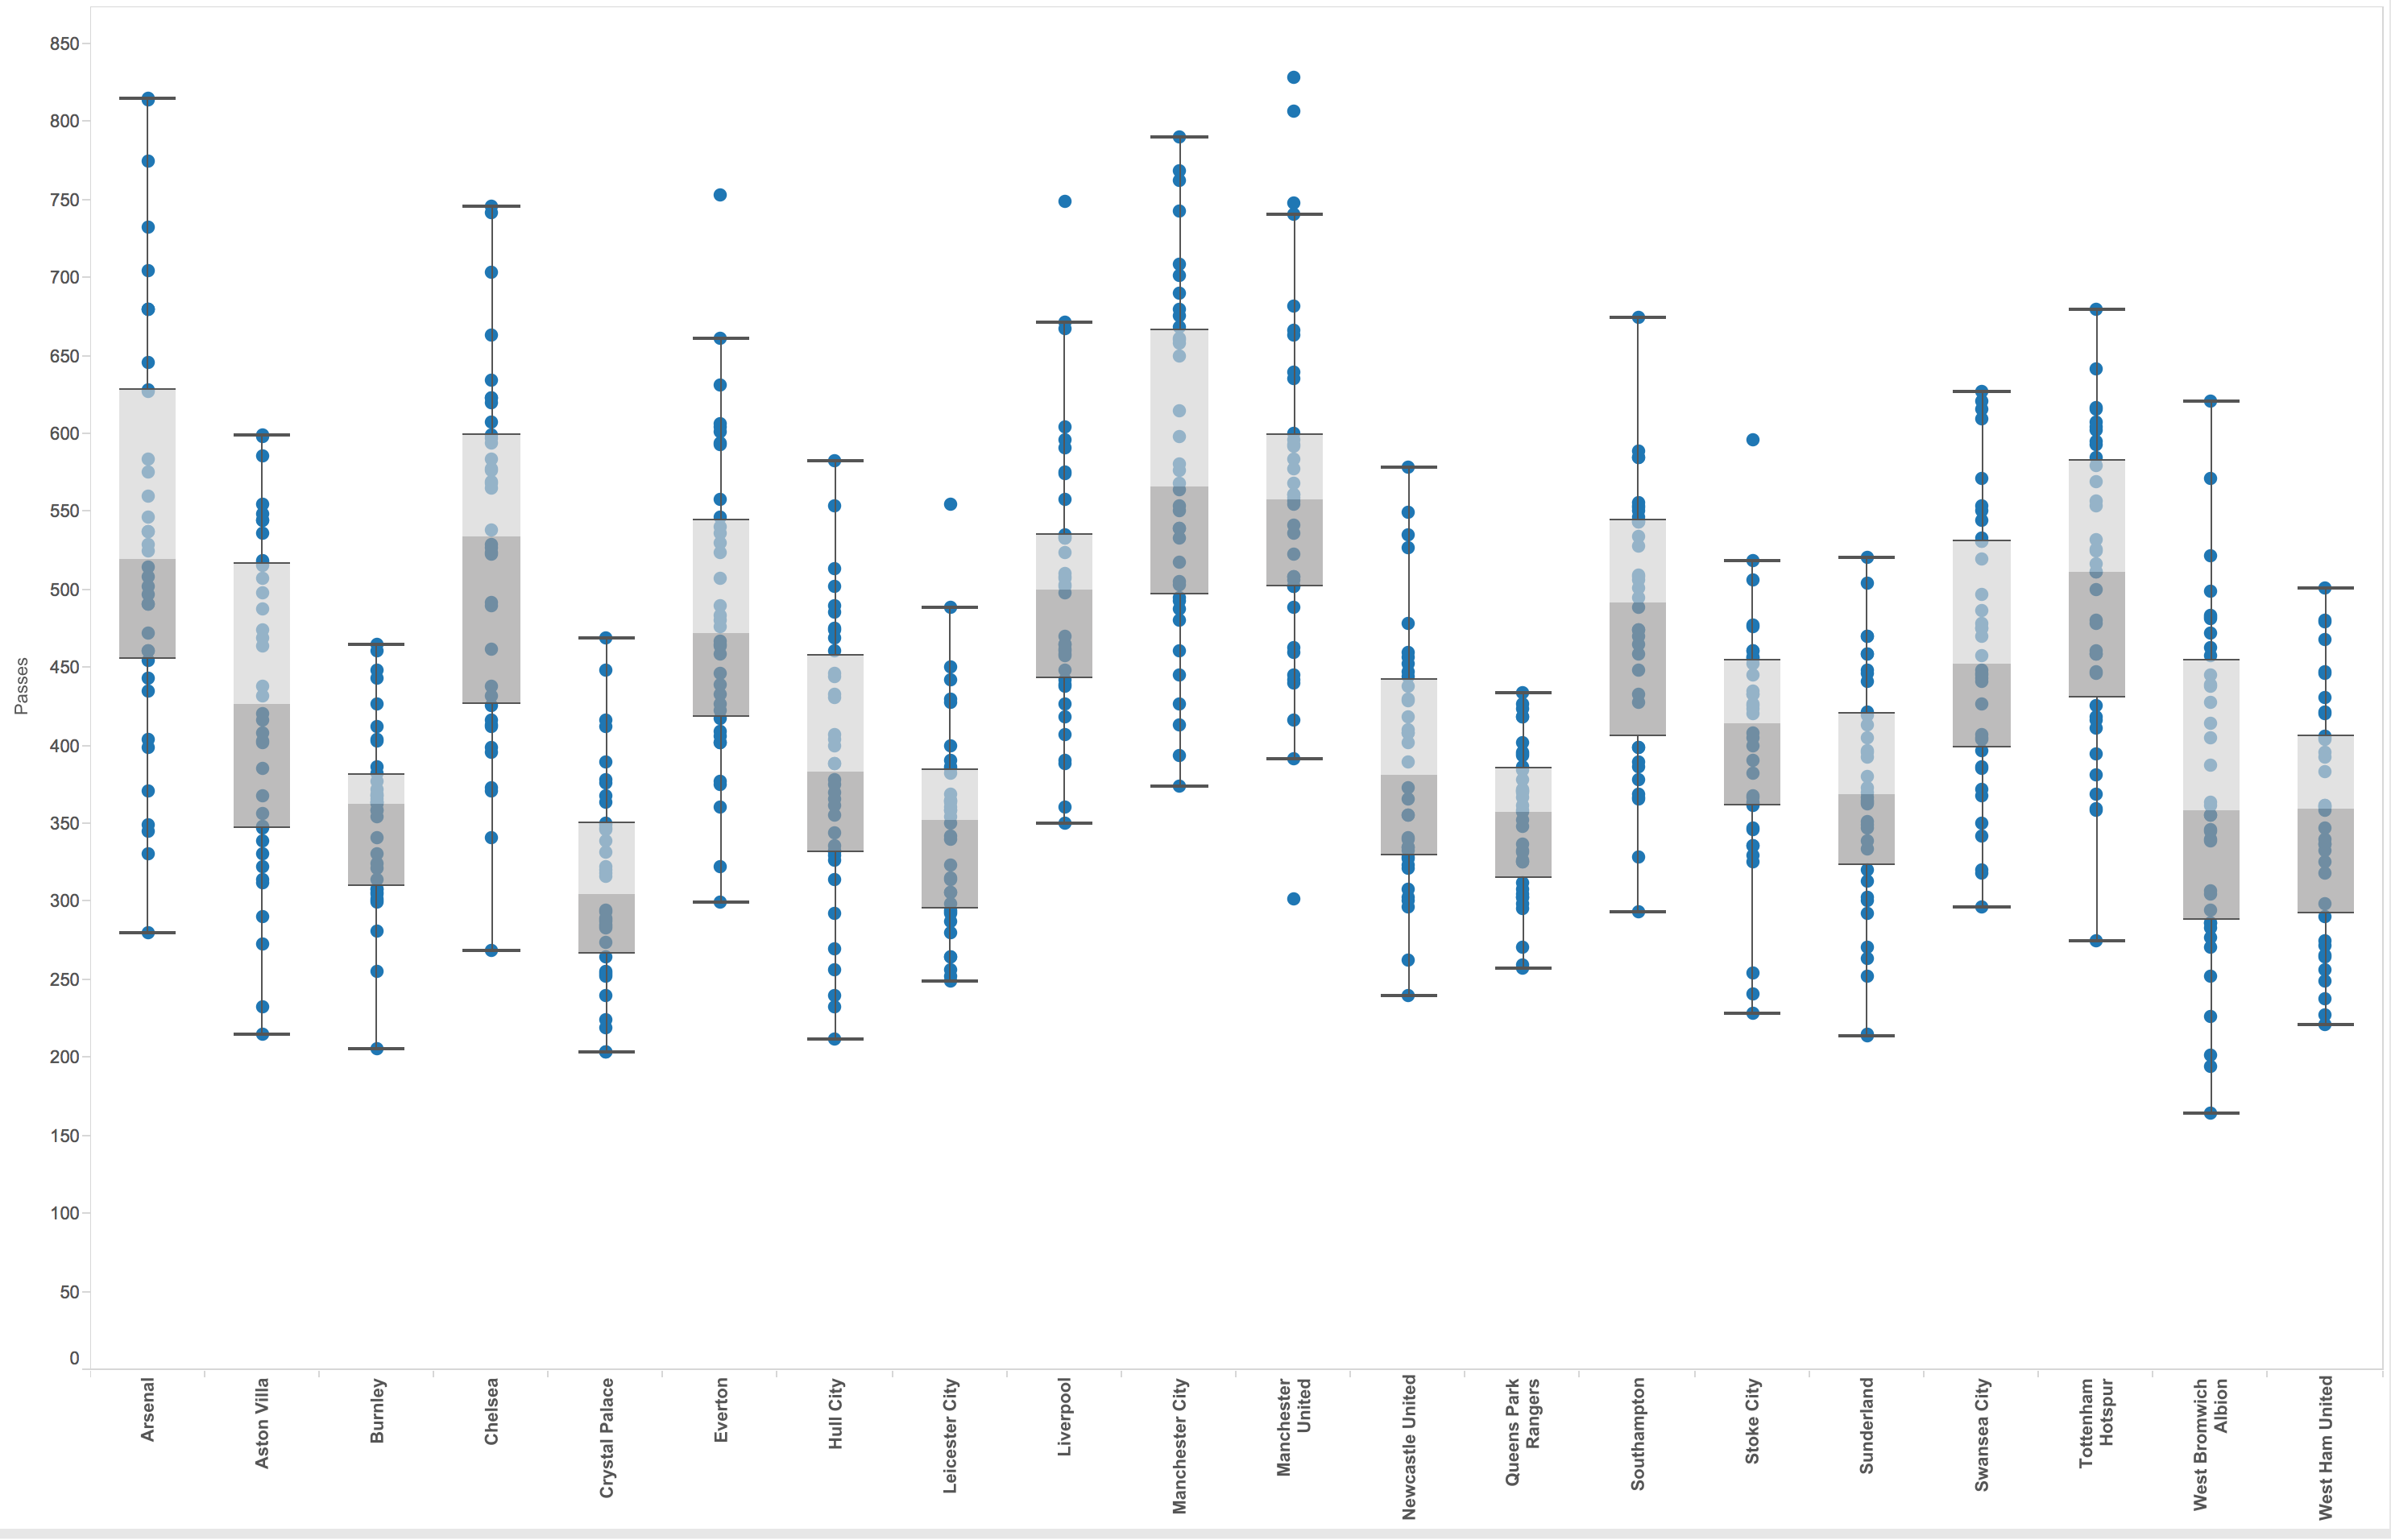 First Thing To Note Is Tableau's Default Preference To Extend The Whiskers  To 15 X The Interquartile Range I Believe Box Plots Are Designed To Show  The